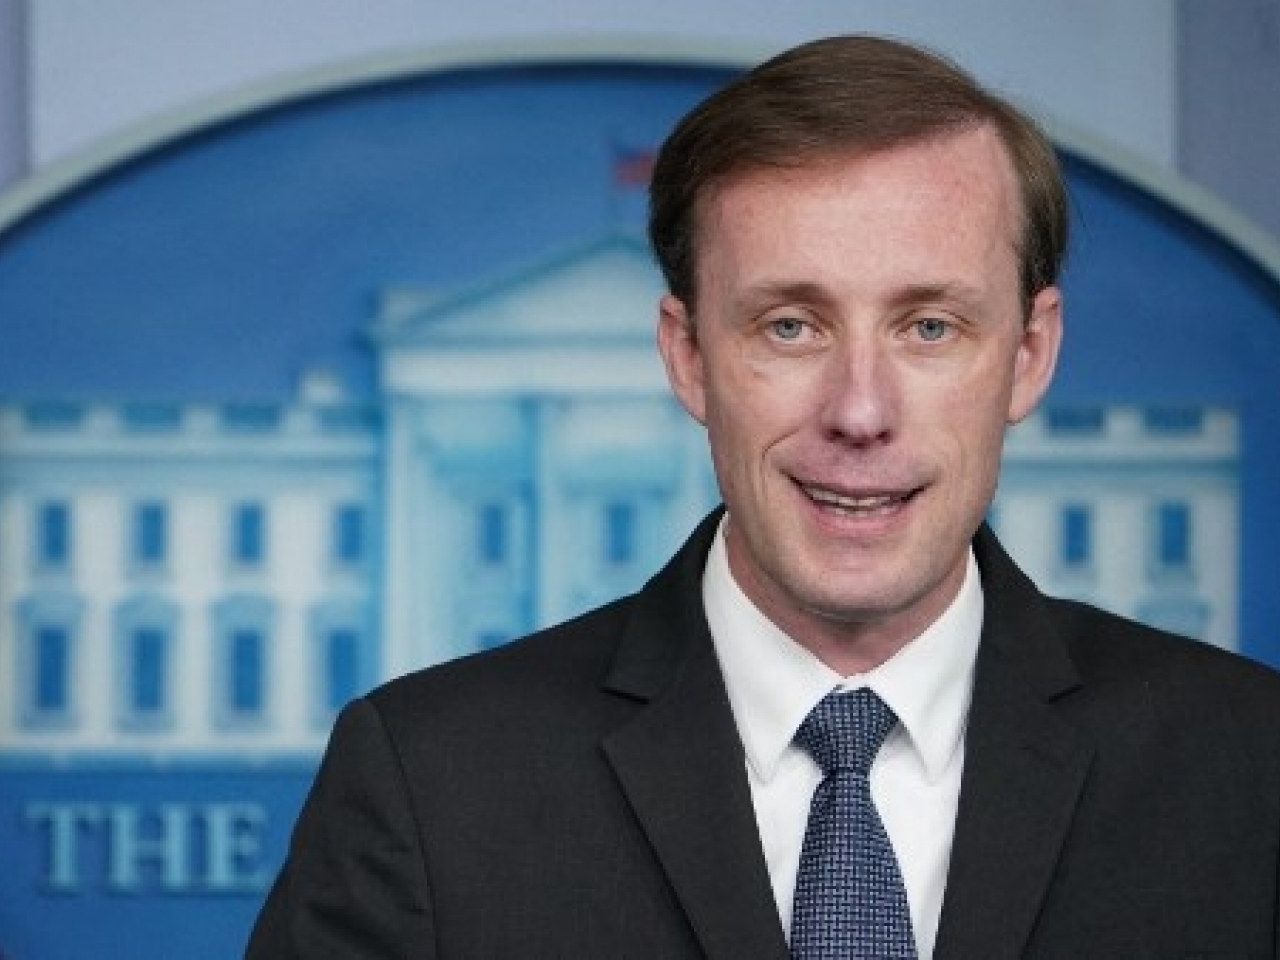 US national security adviser Jake Sullivan says they have to follow the science. Photo: AFP